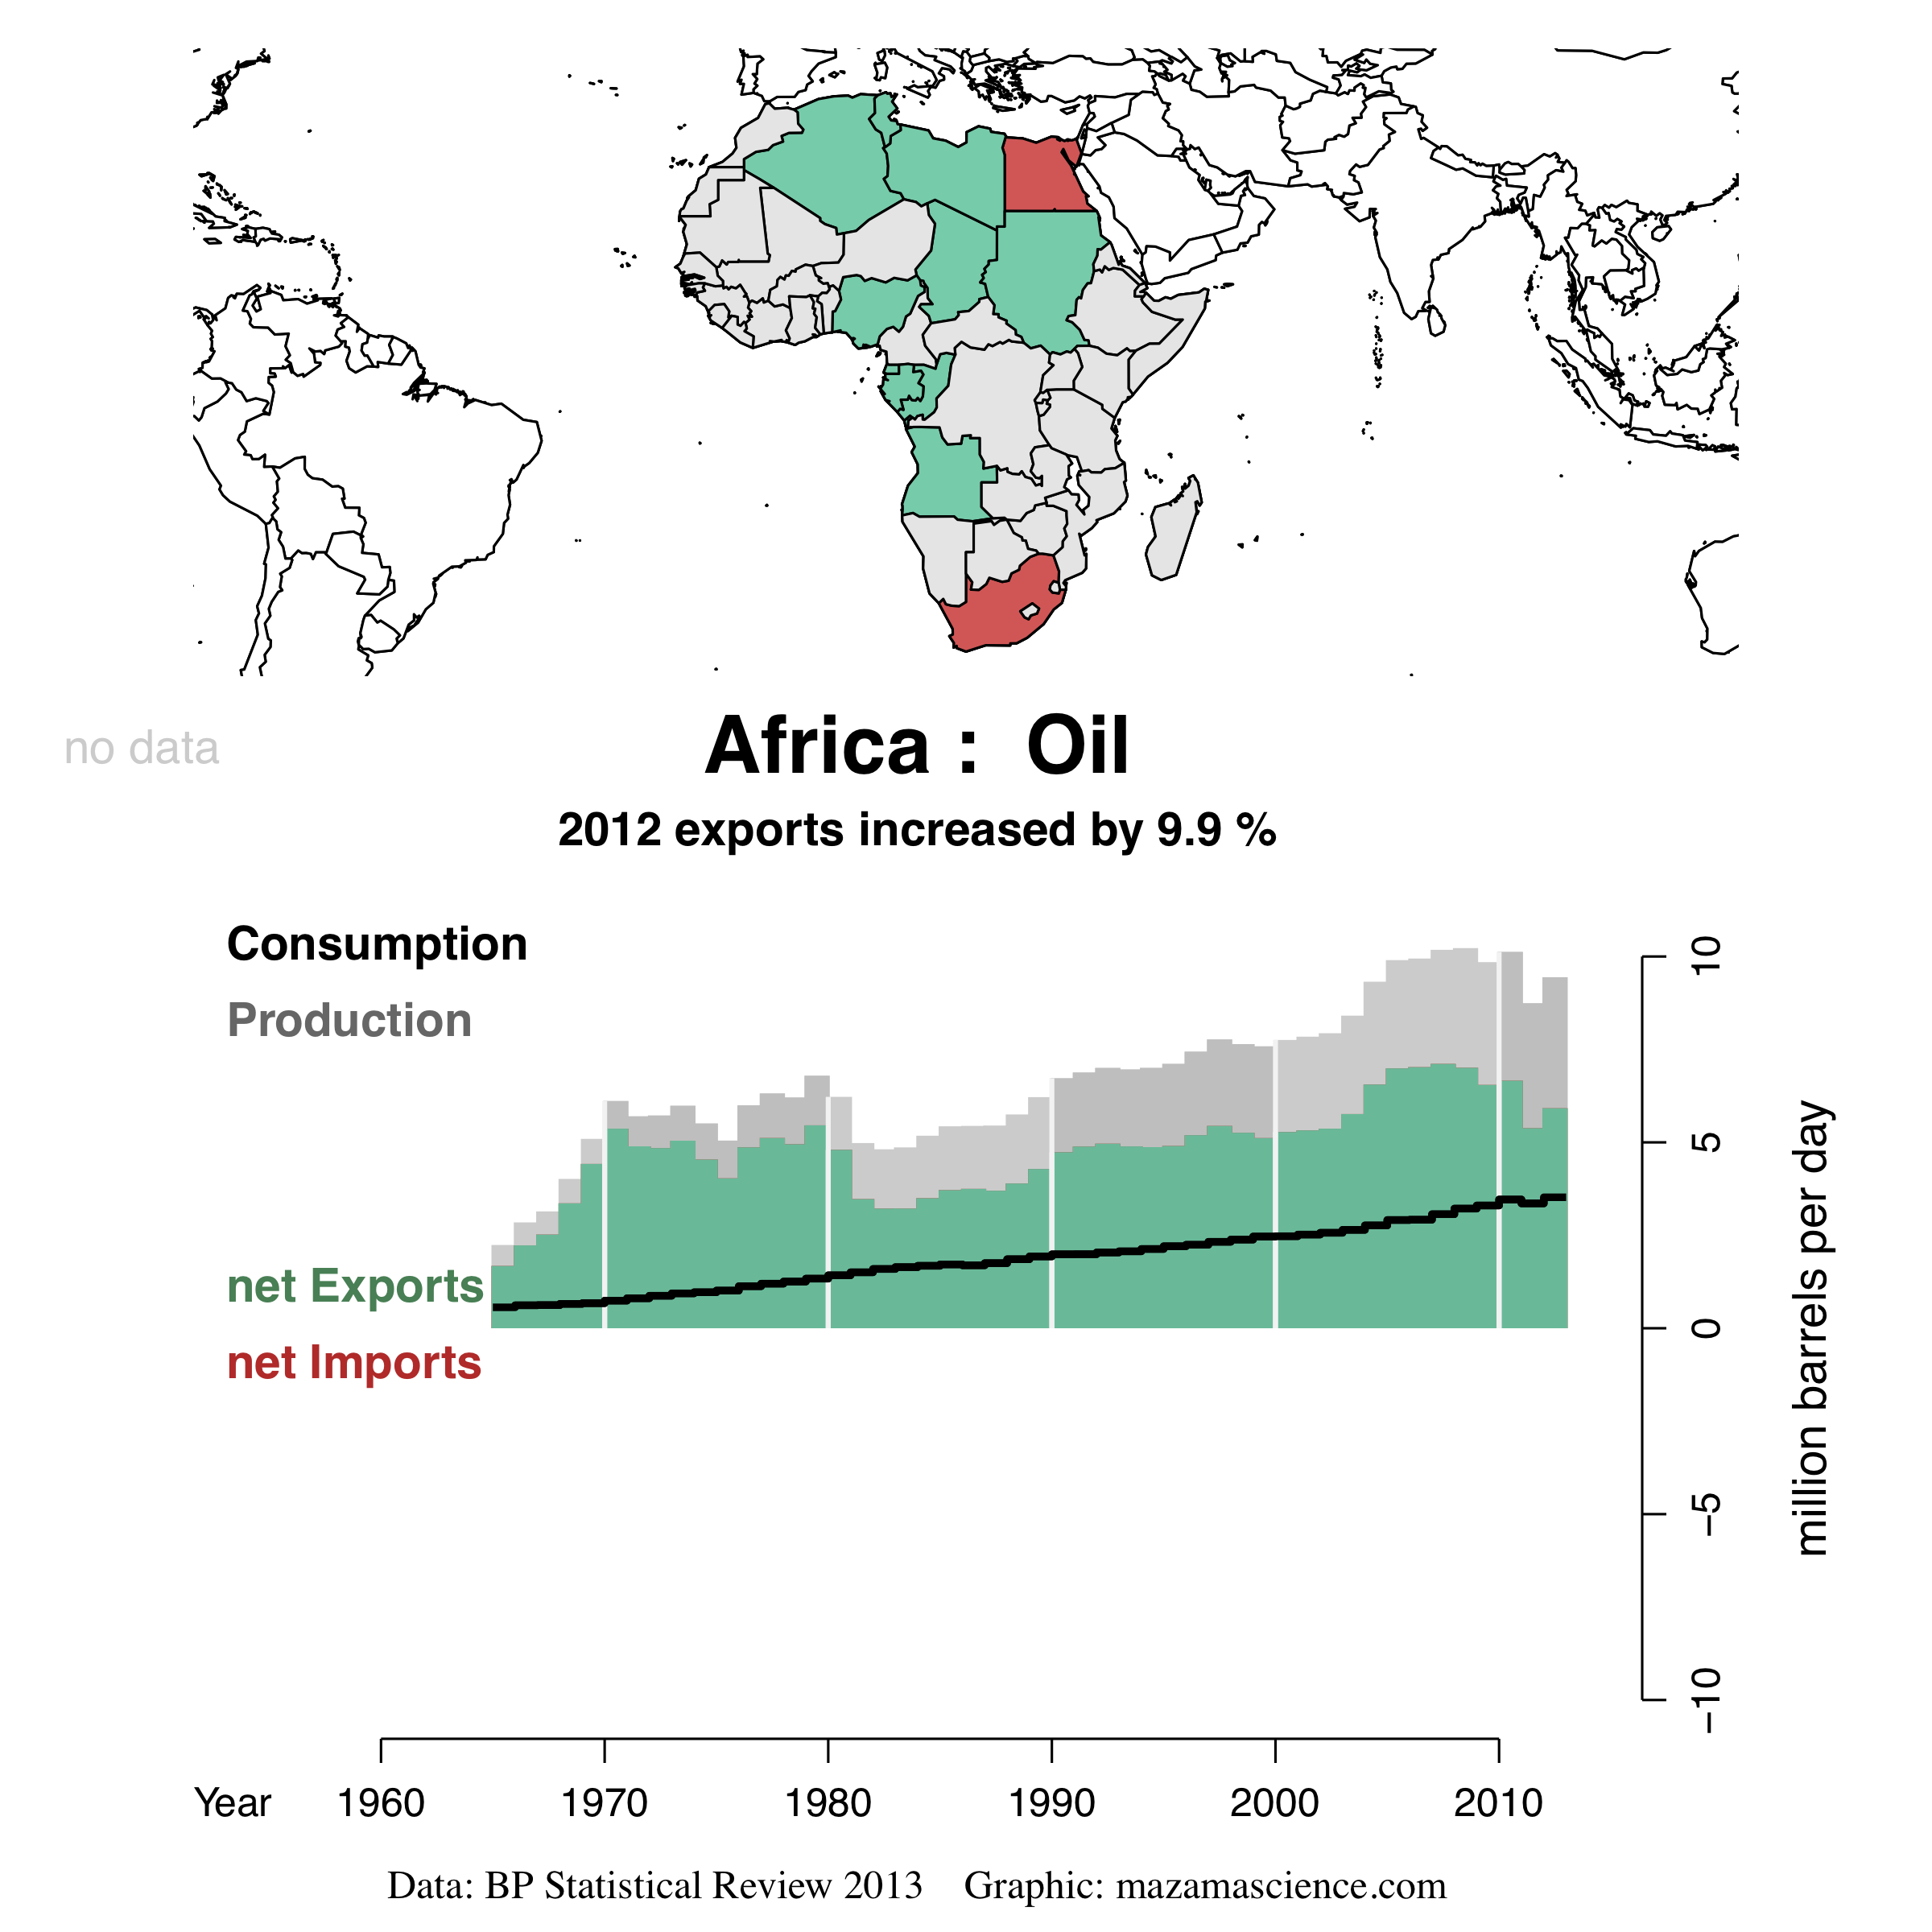 African oil production, consumption, and exports